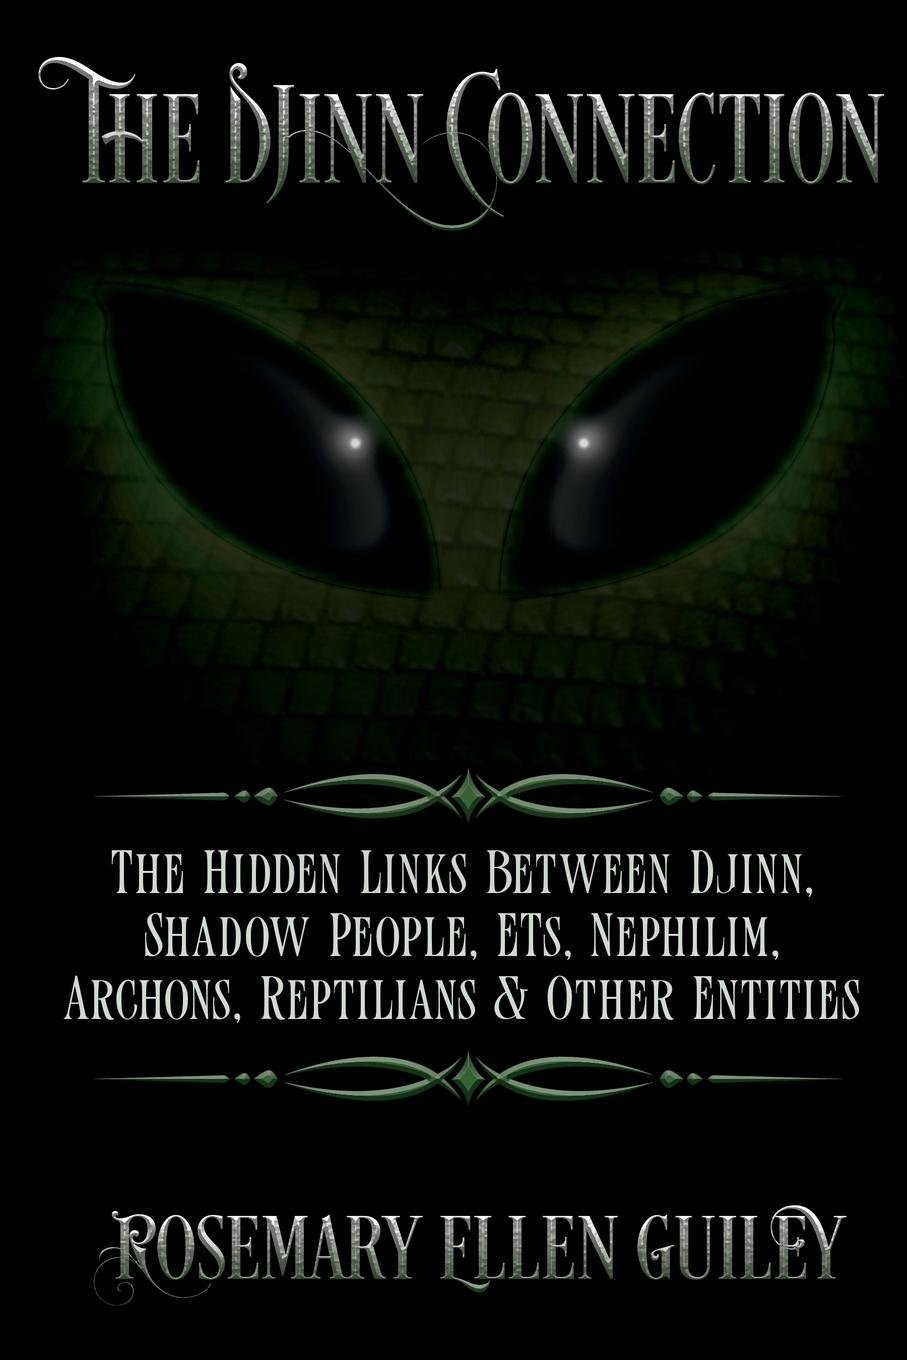 Download The Djinn Connection: The Hidden Links Between Djinn, Shadow People, ETs, Nephilim, Archons, Reptilians and Other Entities pdf